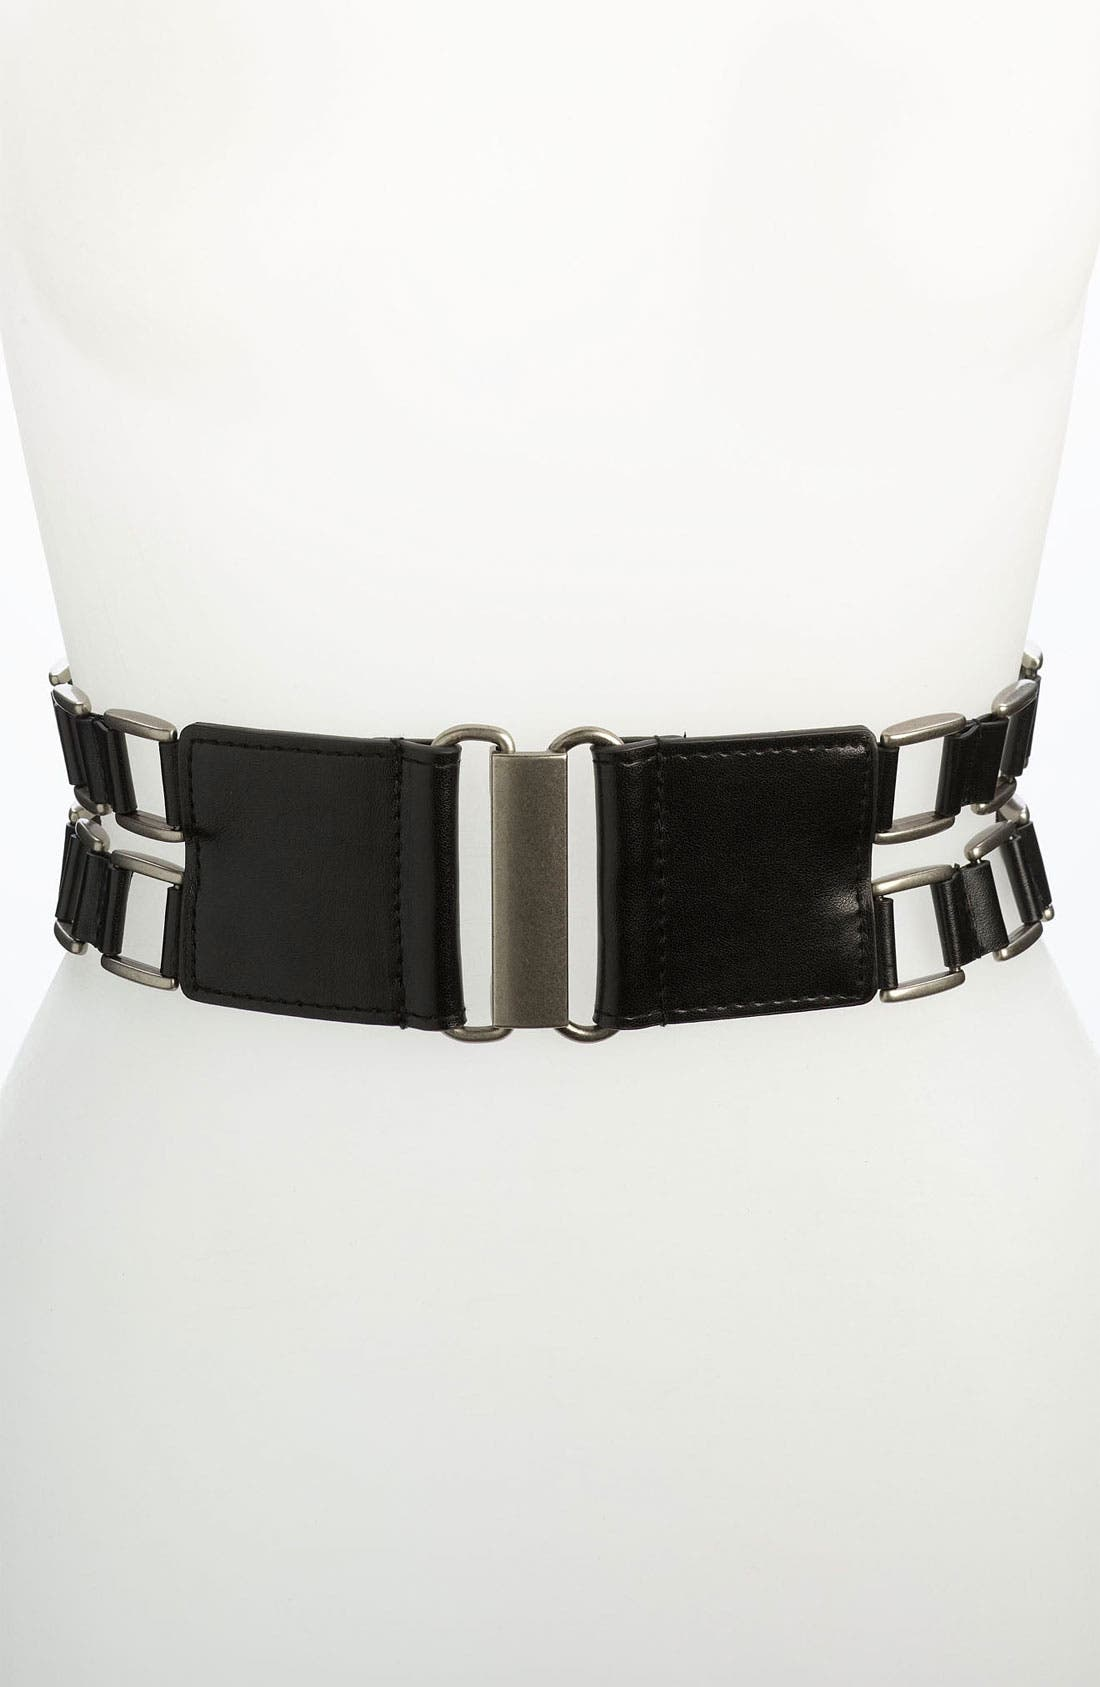 Alternate Image 1 Selected - Belgo Lux Stretch Belt